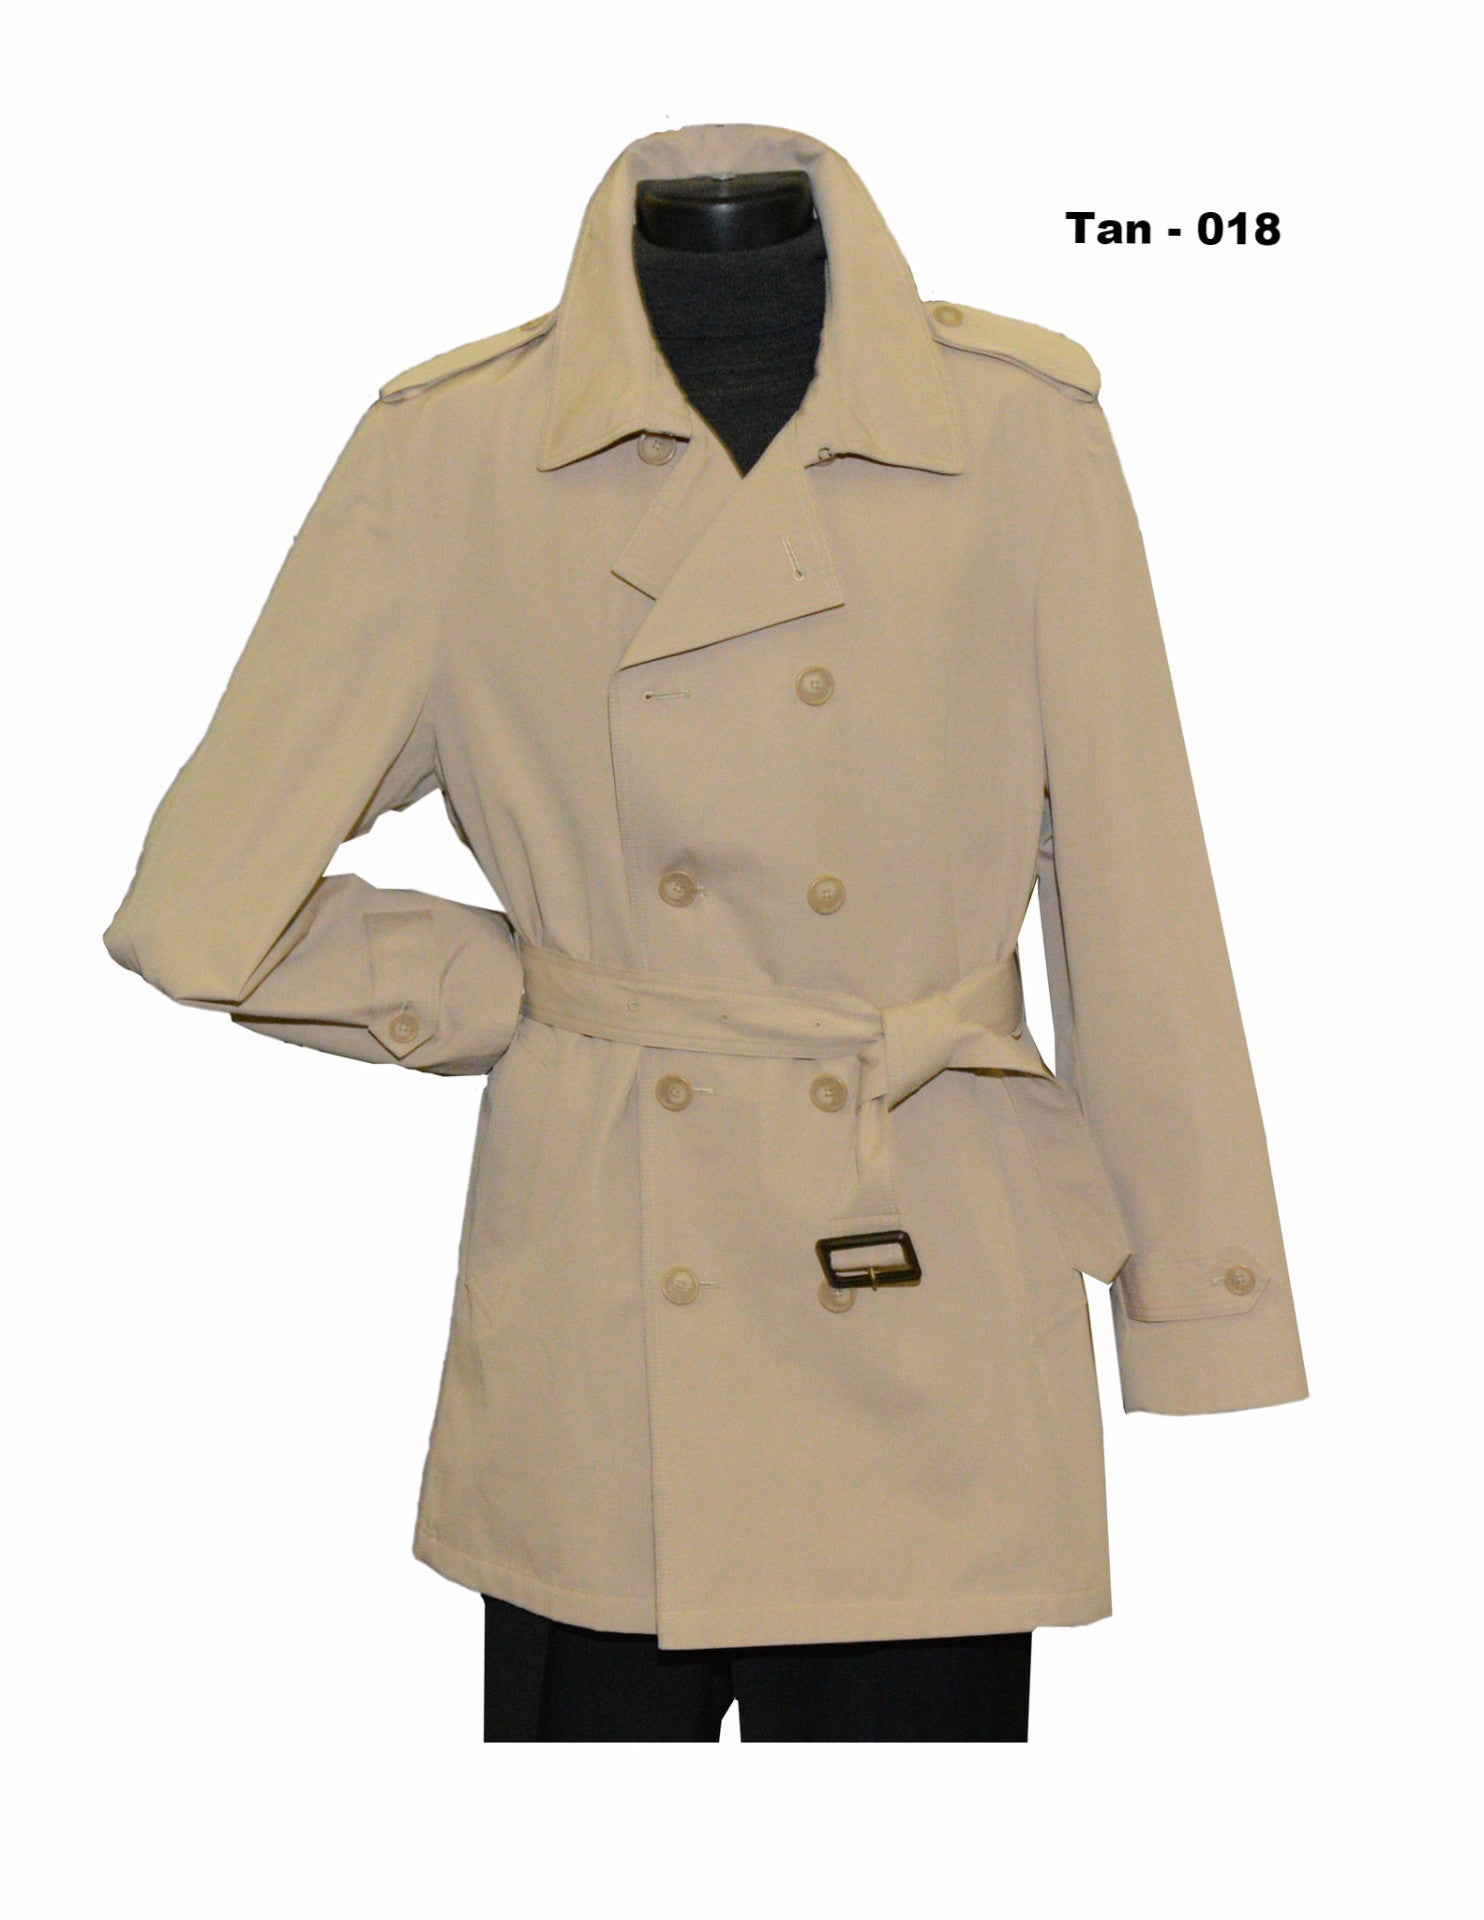 Tan double breasted 36 inch rain coat outerwear